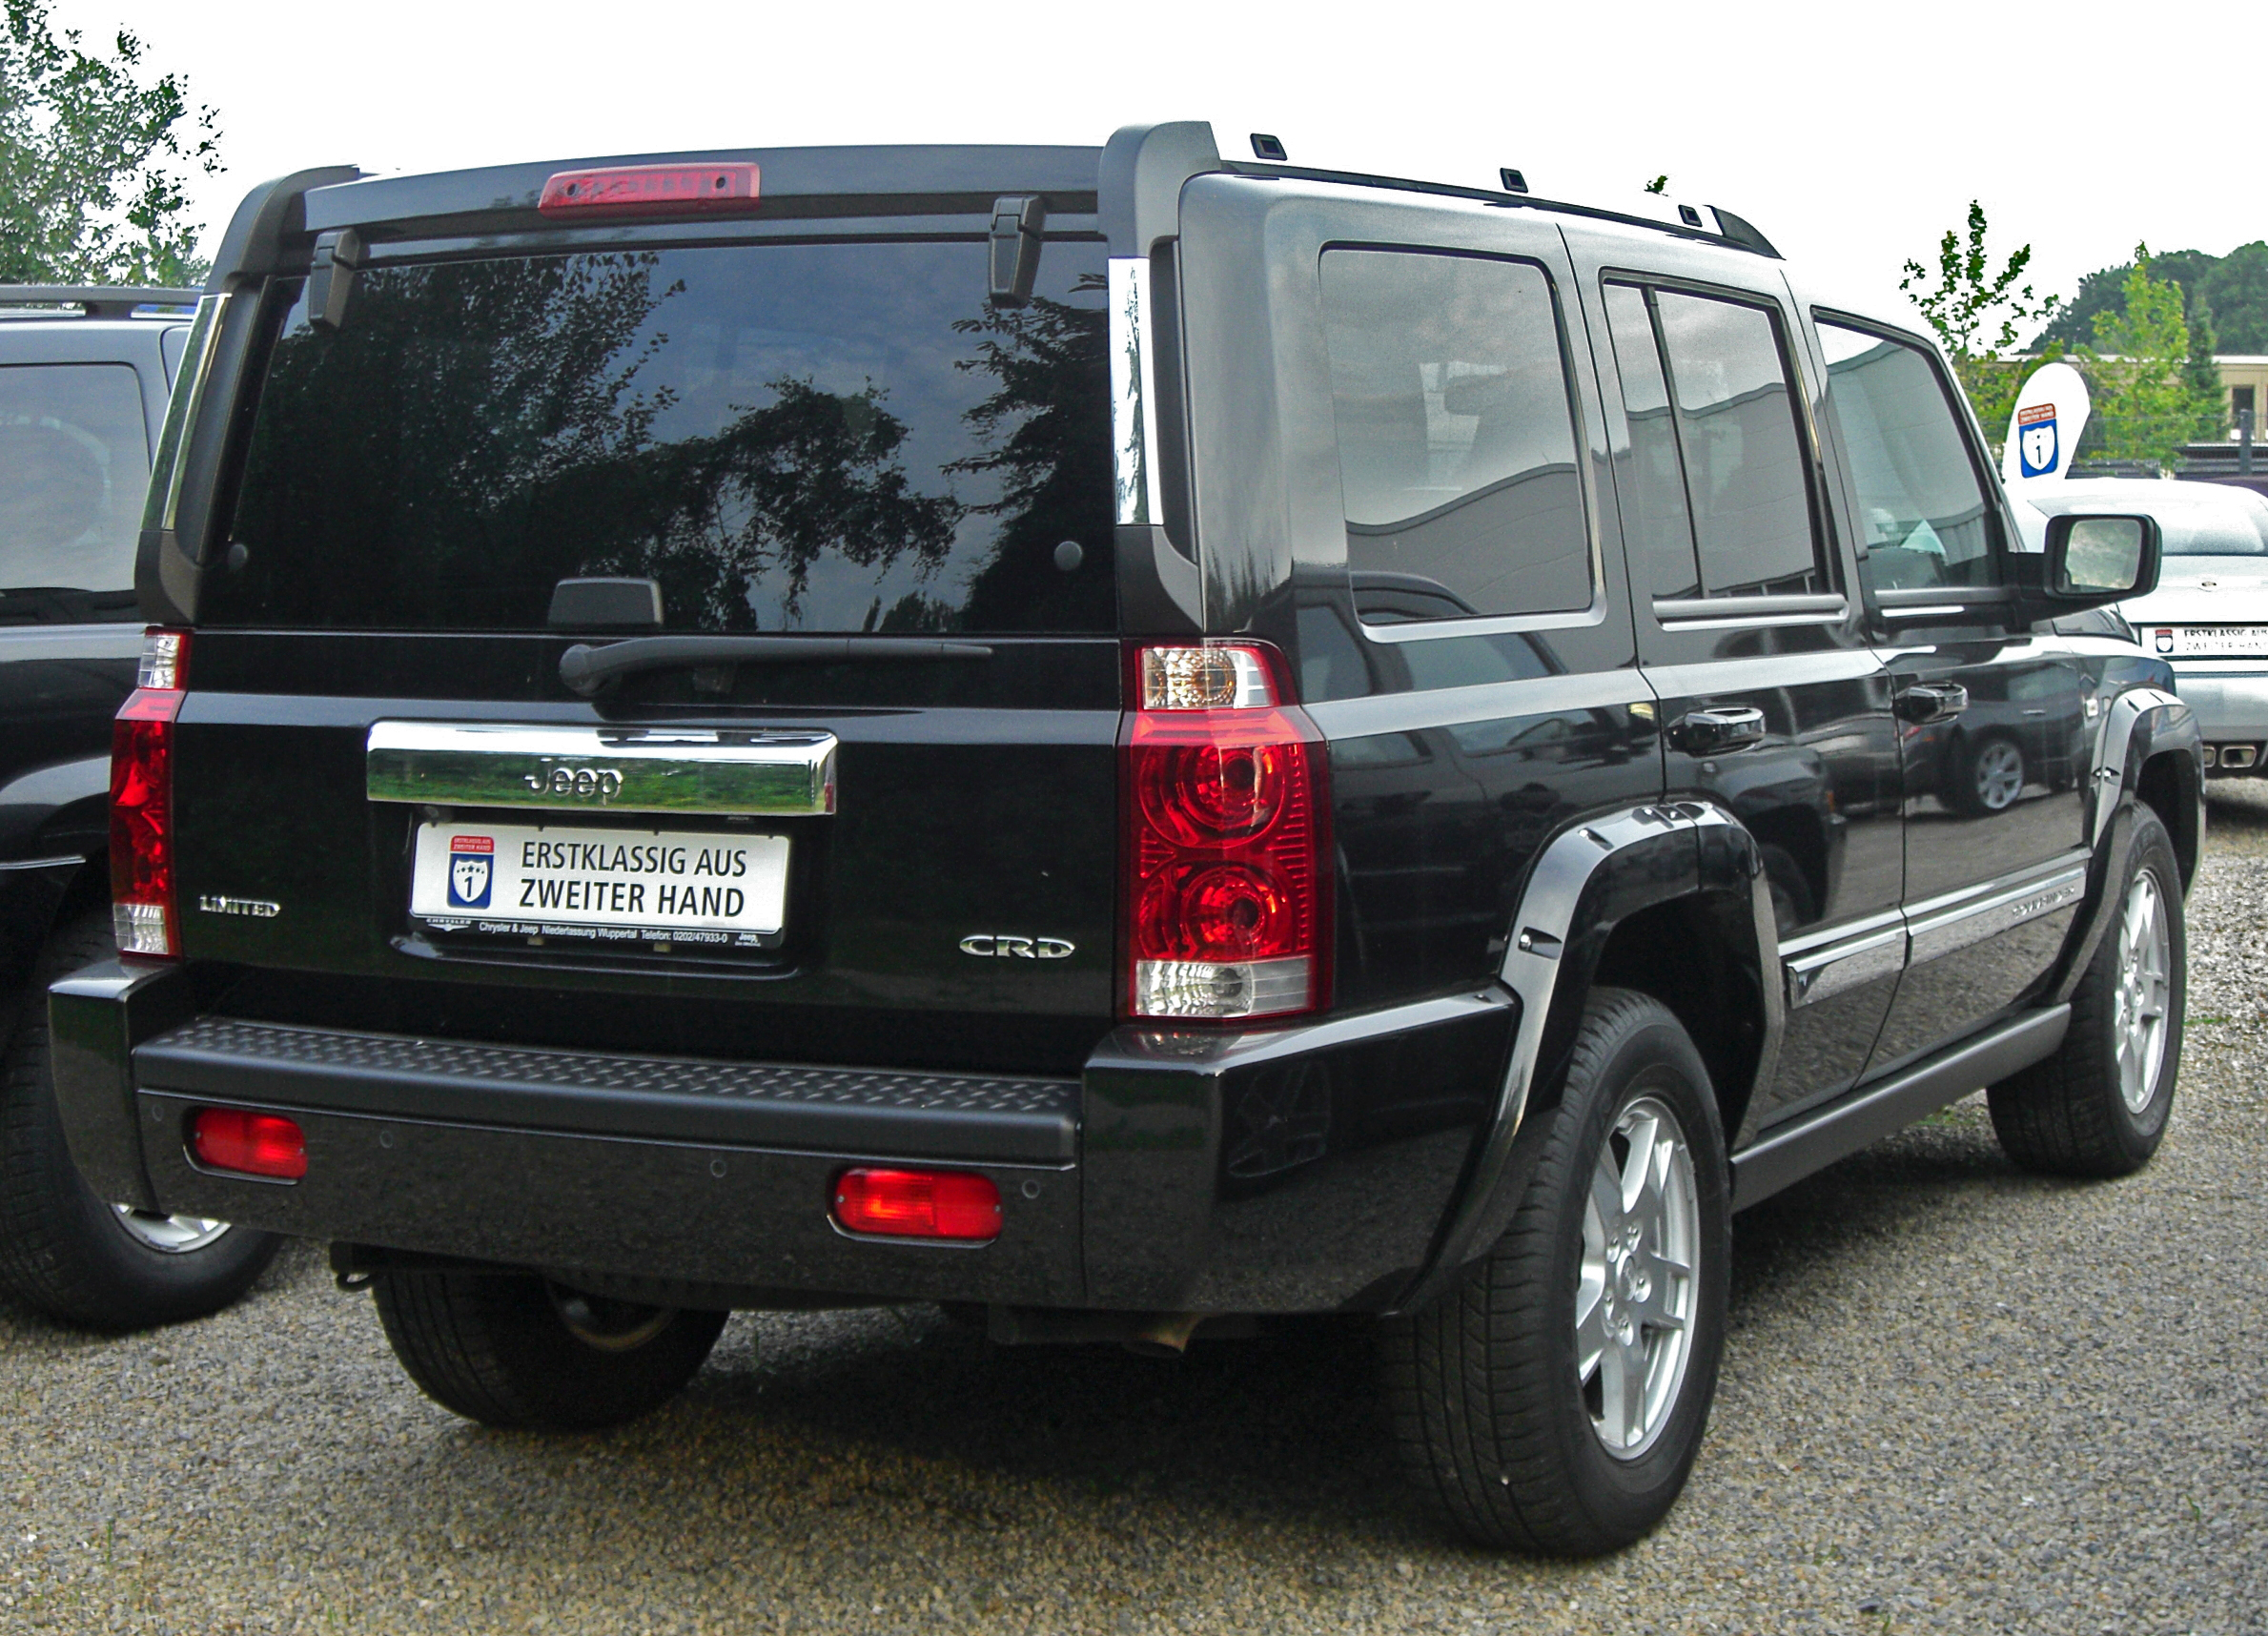 Used Jeep Commanders For Sale File:Jeep Commander 3.0 CRD rear.jpg - Wikimedia Commons